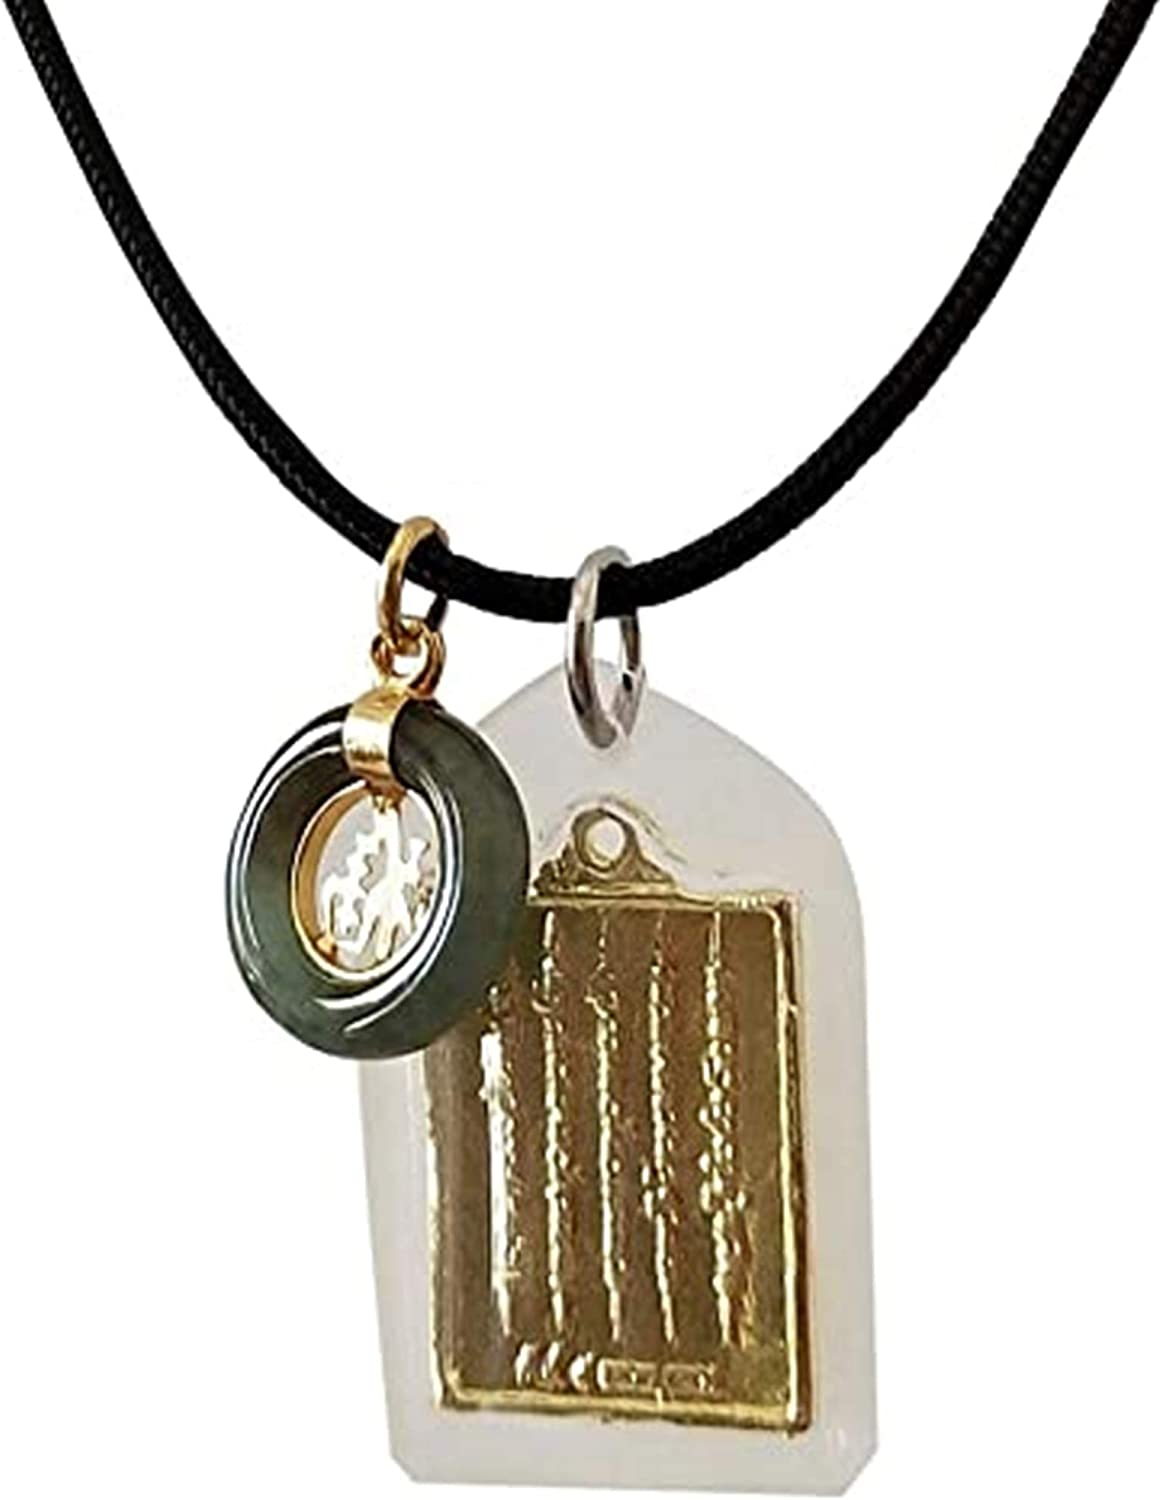 Thai Amulet Buddha Pendants Magic Holy for Men Women Charms Arjan Nu Kanpai Yantra 5 Rows with Coin Stone Luckly Necklaces Handmade Protect Rich Charm Trade Health Wealth Money for Success Big Good Fortune Bring Attract Money